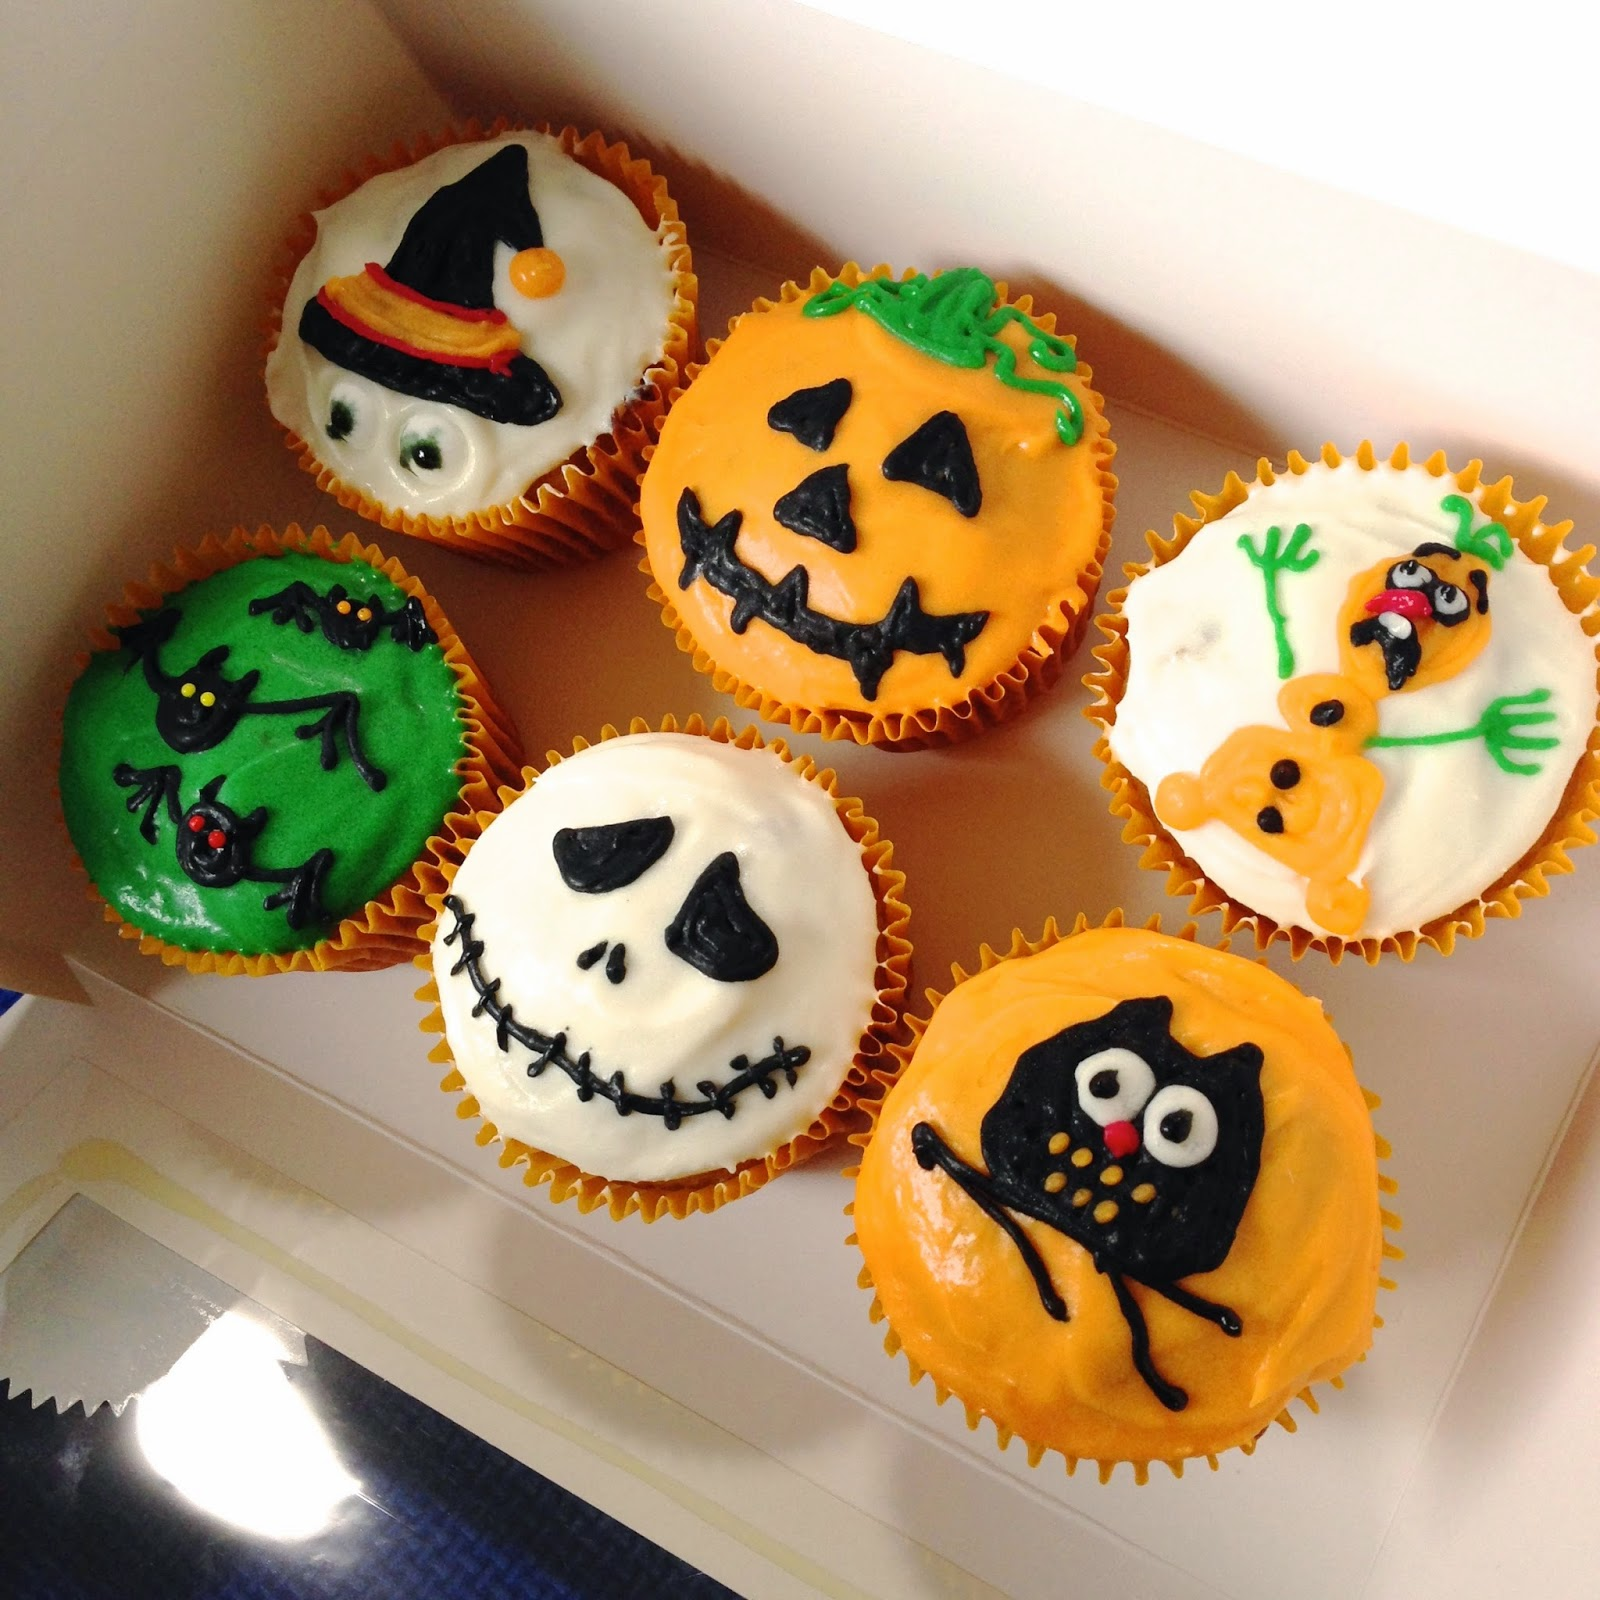 These Are From A Special With Pumpkin Cupcakes The Cupcake Did Last I Loved Scared Orange Olaf Haha